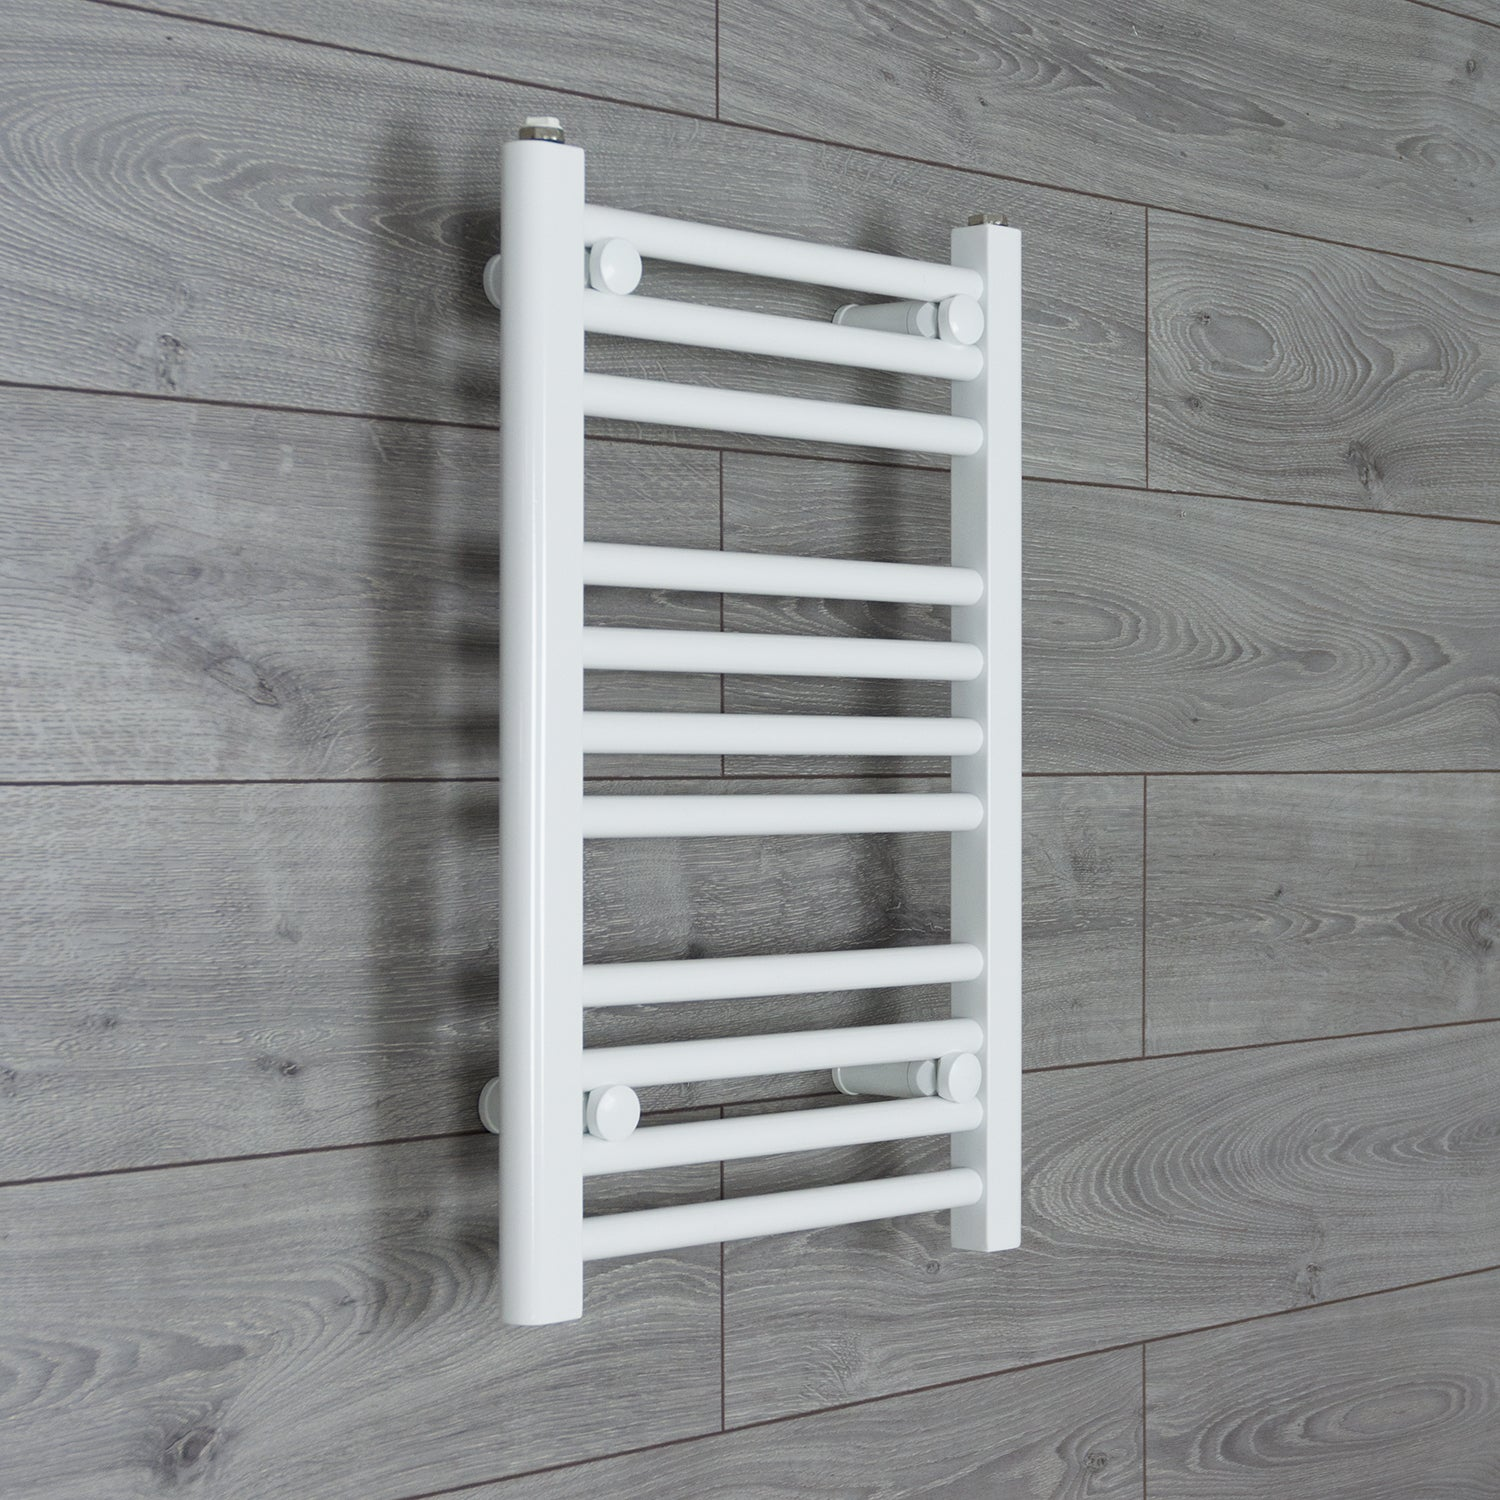 350mm Wide 600mm High White Towel Rail Radiator